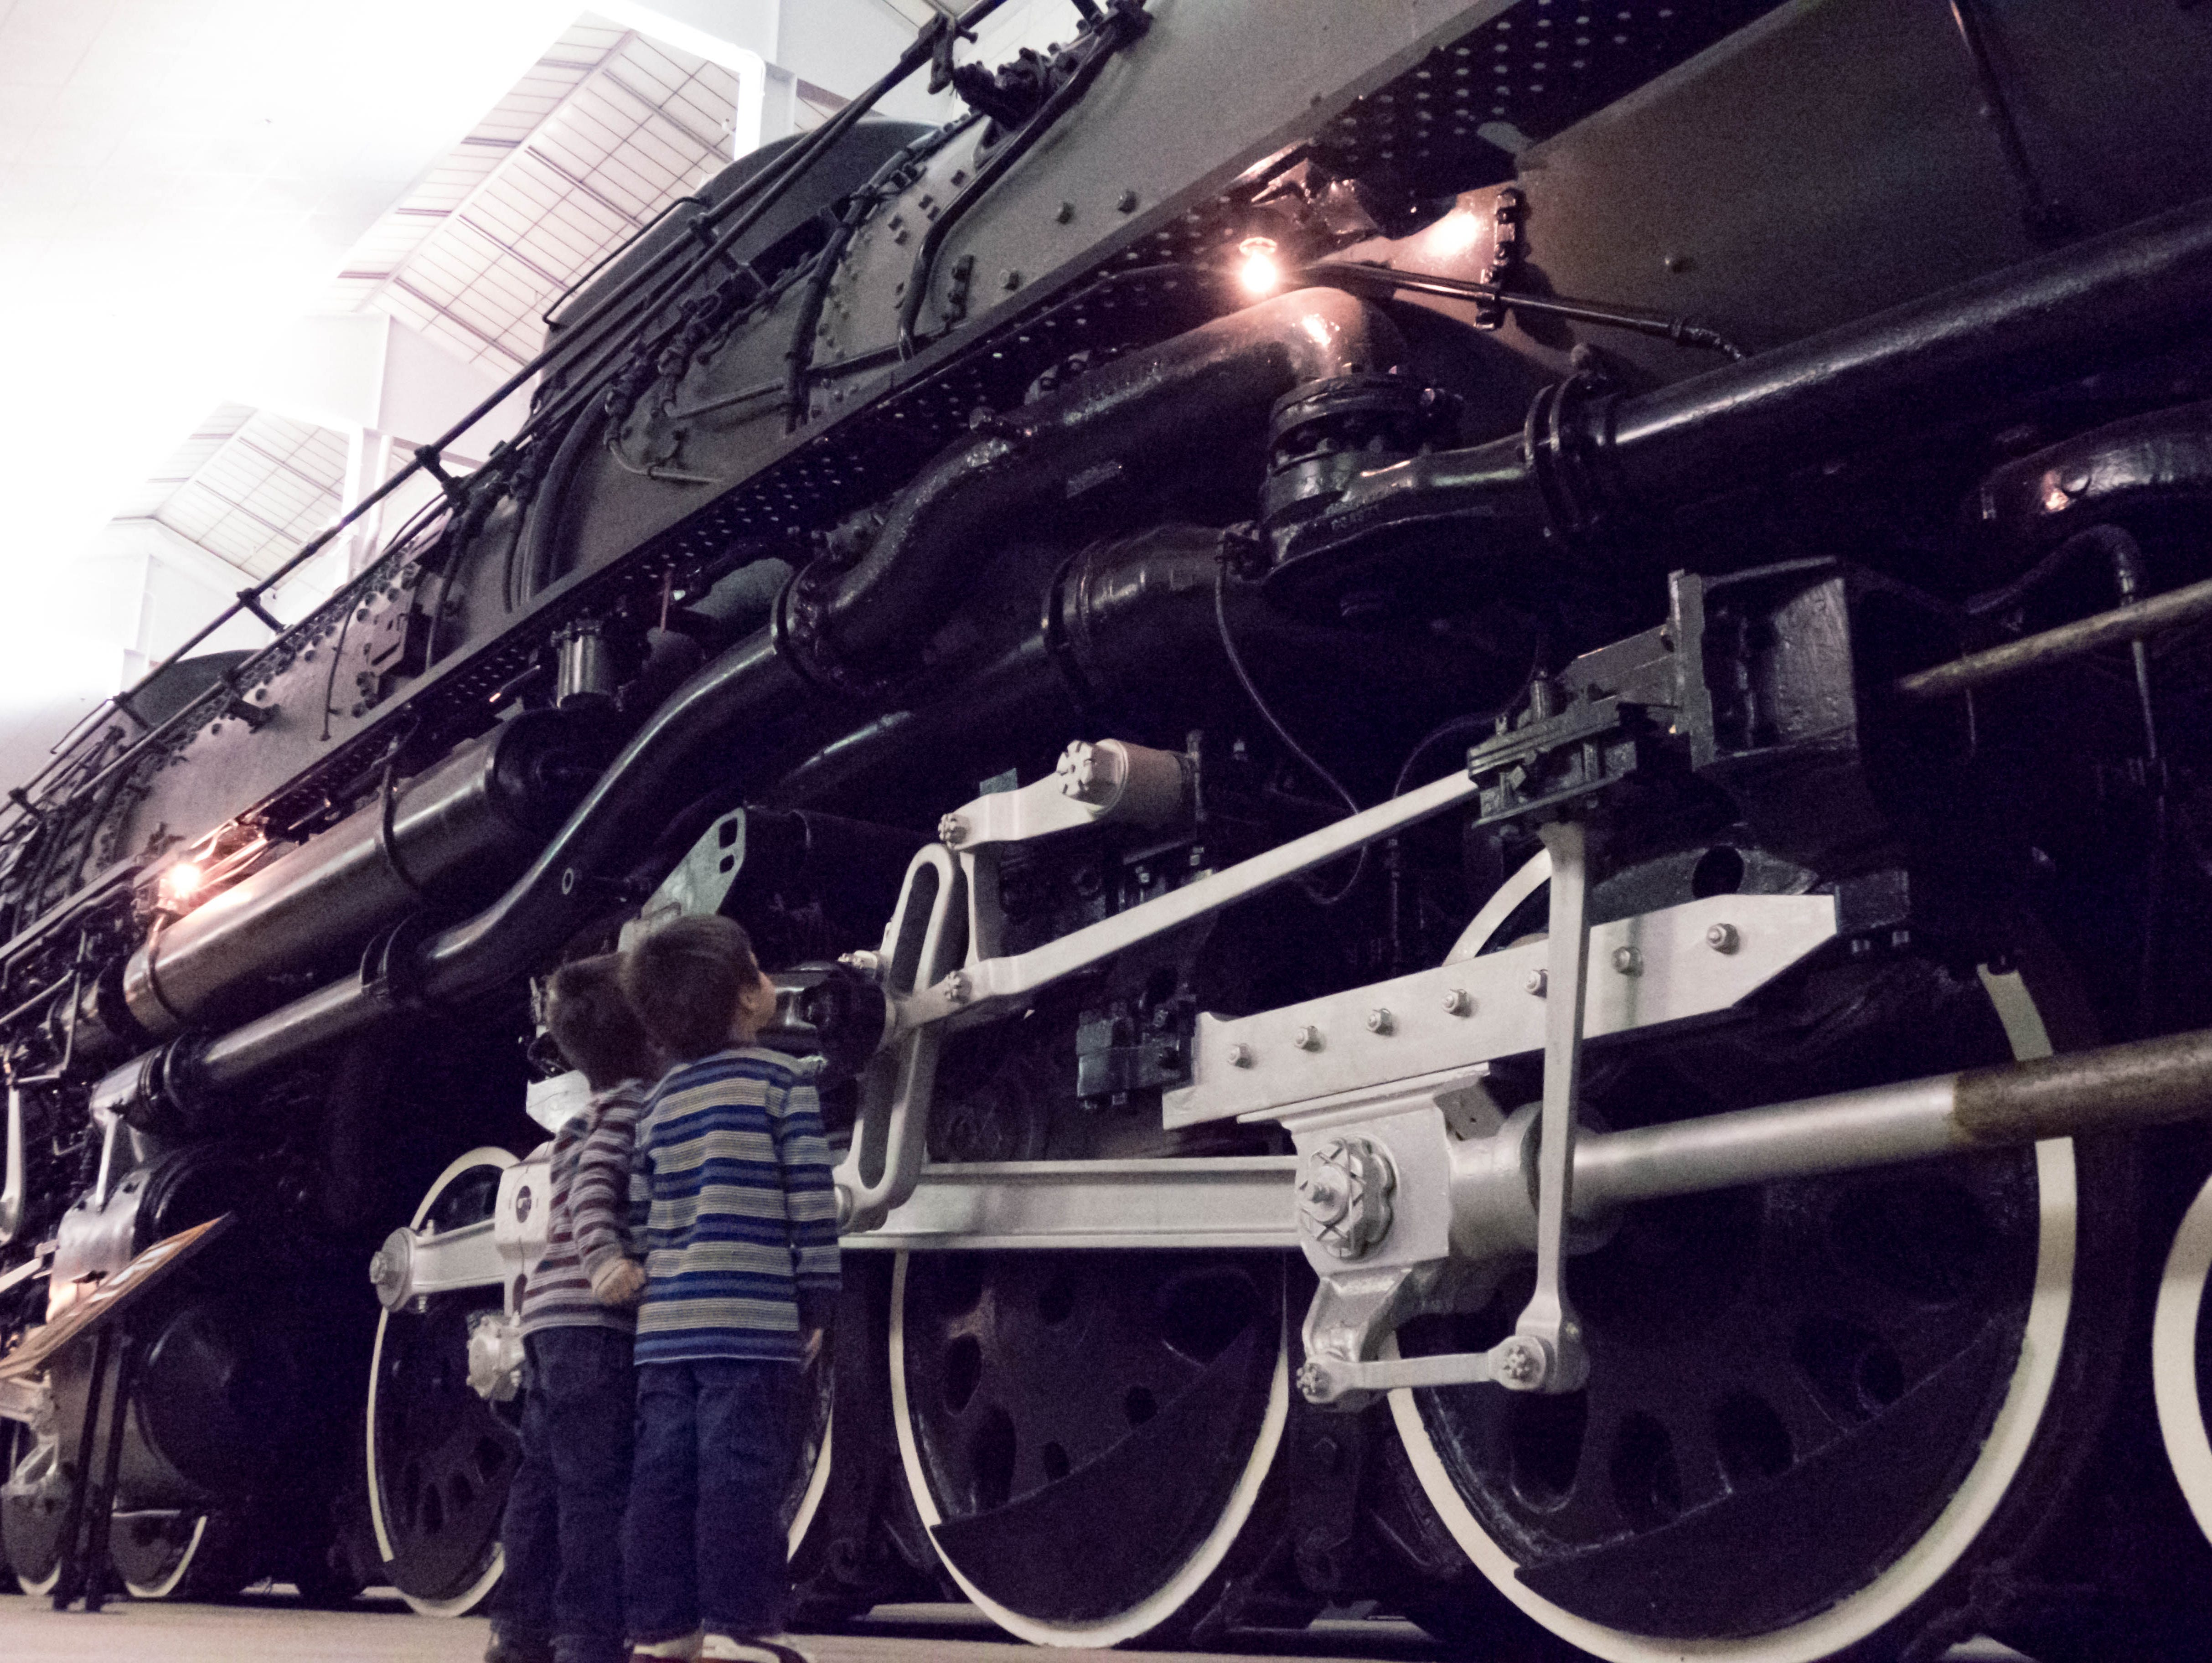 Get a FREE $10 off membership coupon to the National Railroad Museum